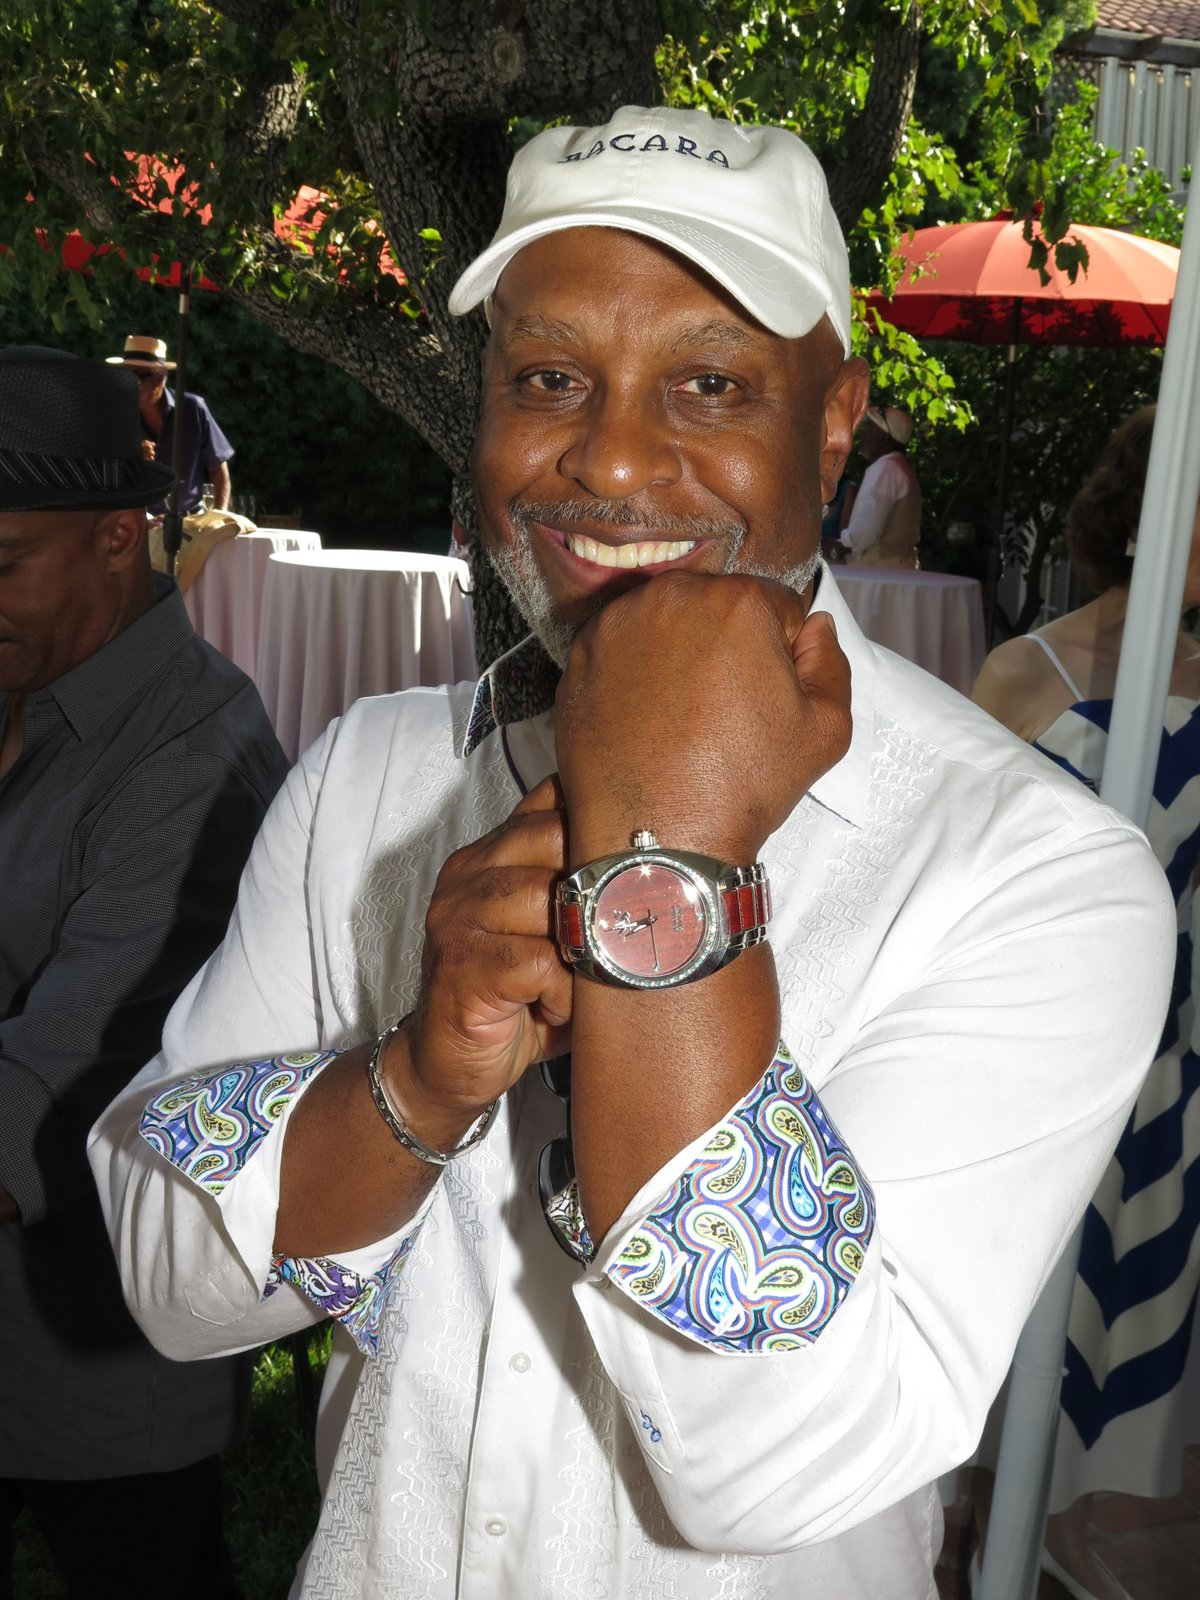 Actor james pickens jr wearing power by benjamin banneker watch benjamin banneker watches for Actor watches